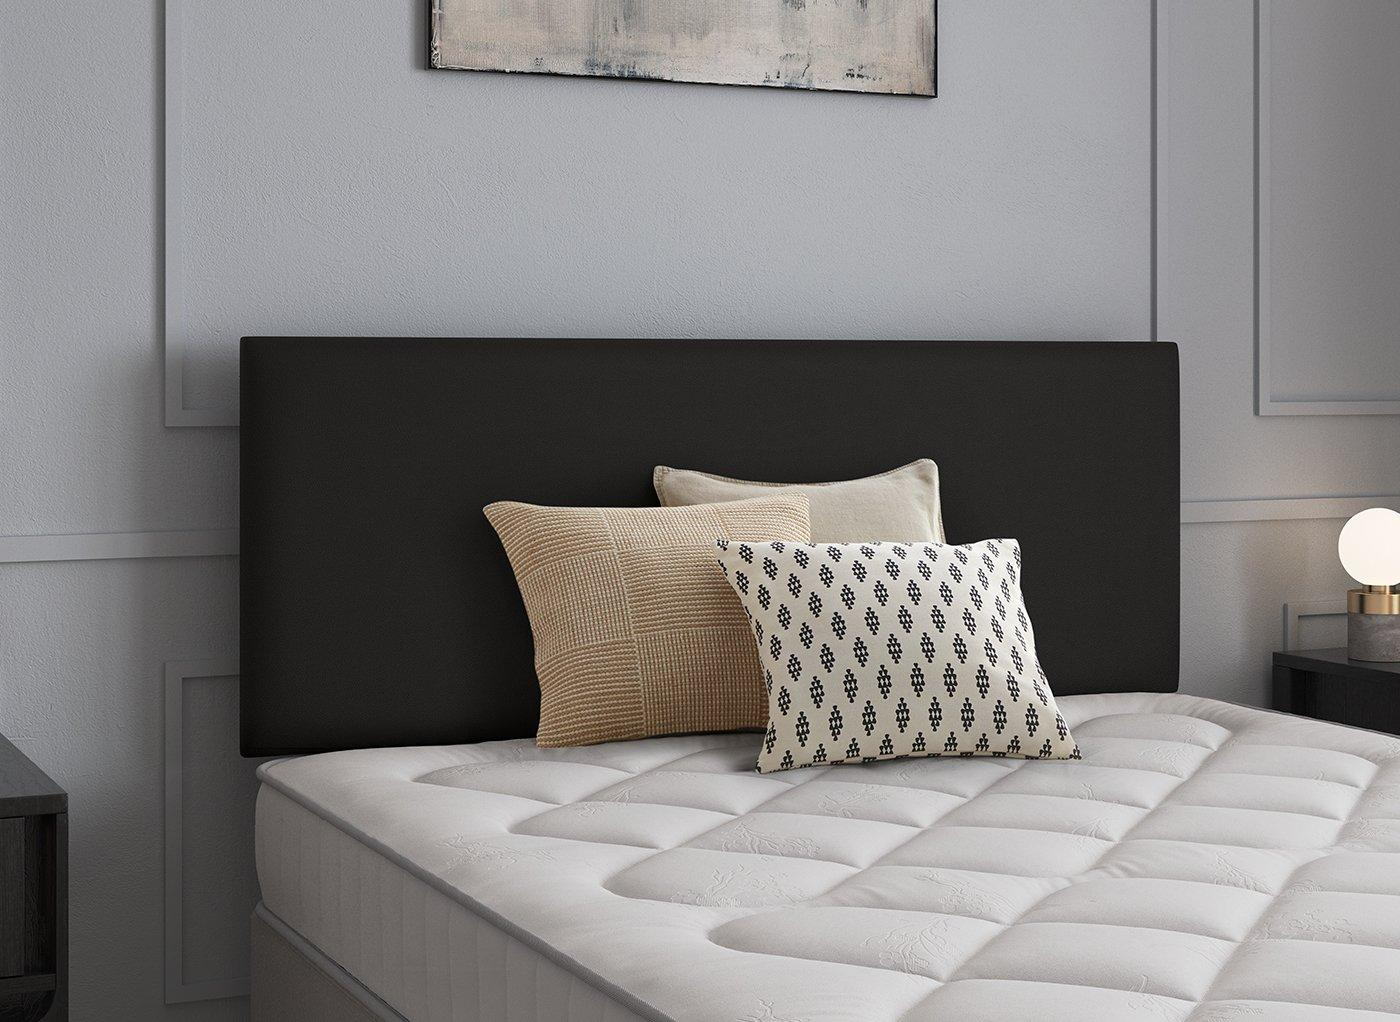 Newark Headboard 2'6 Small single BLACK